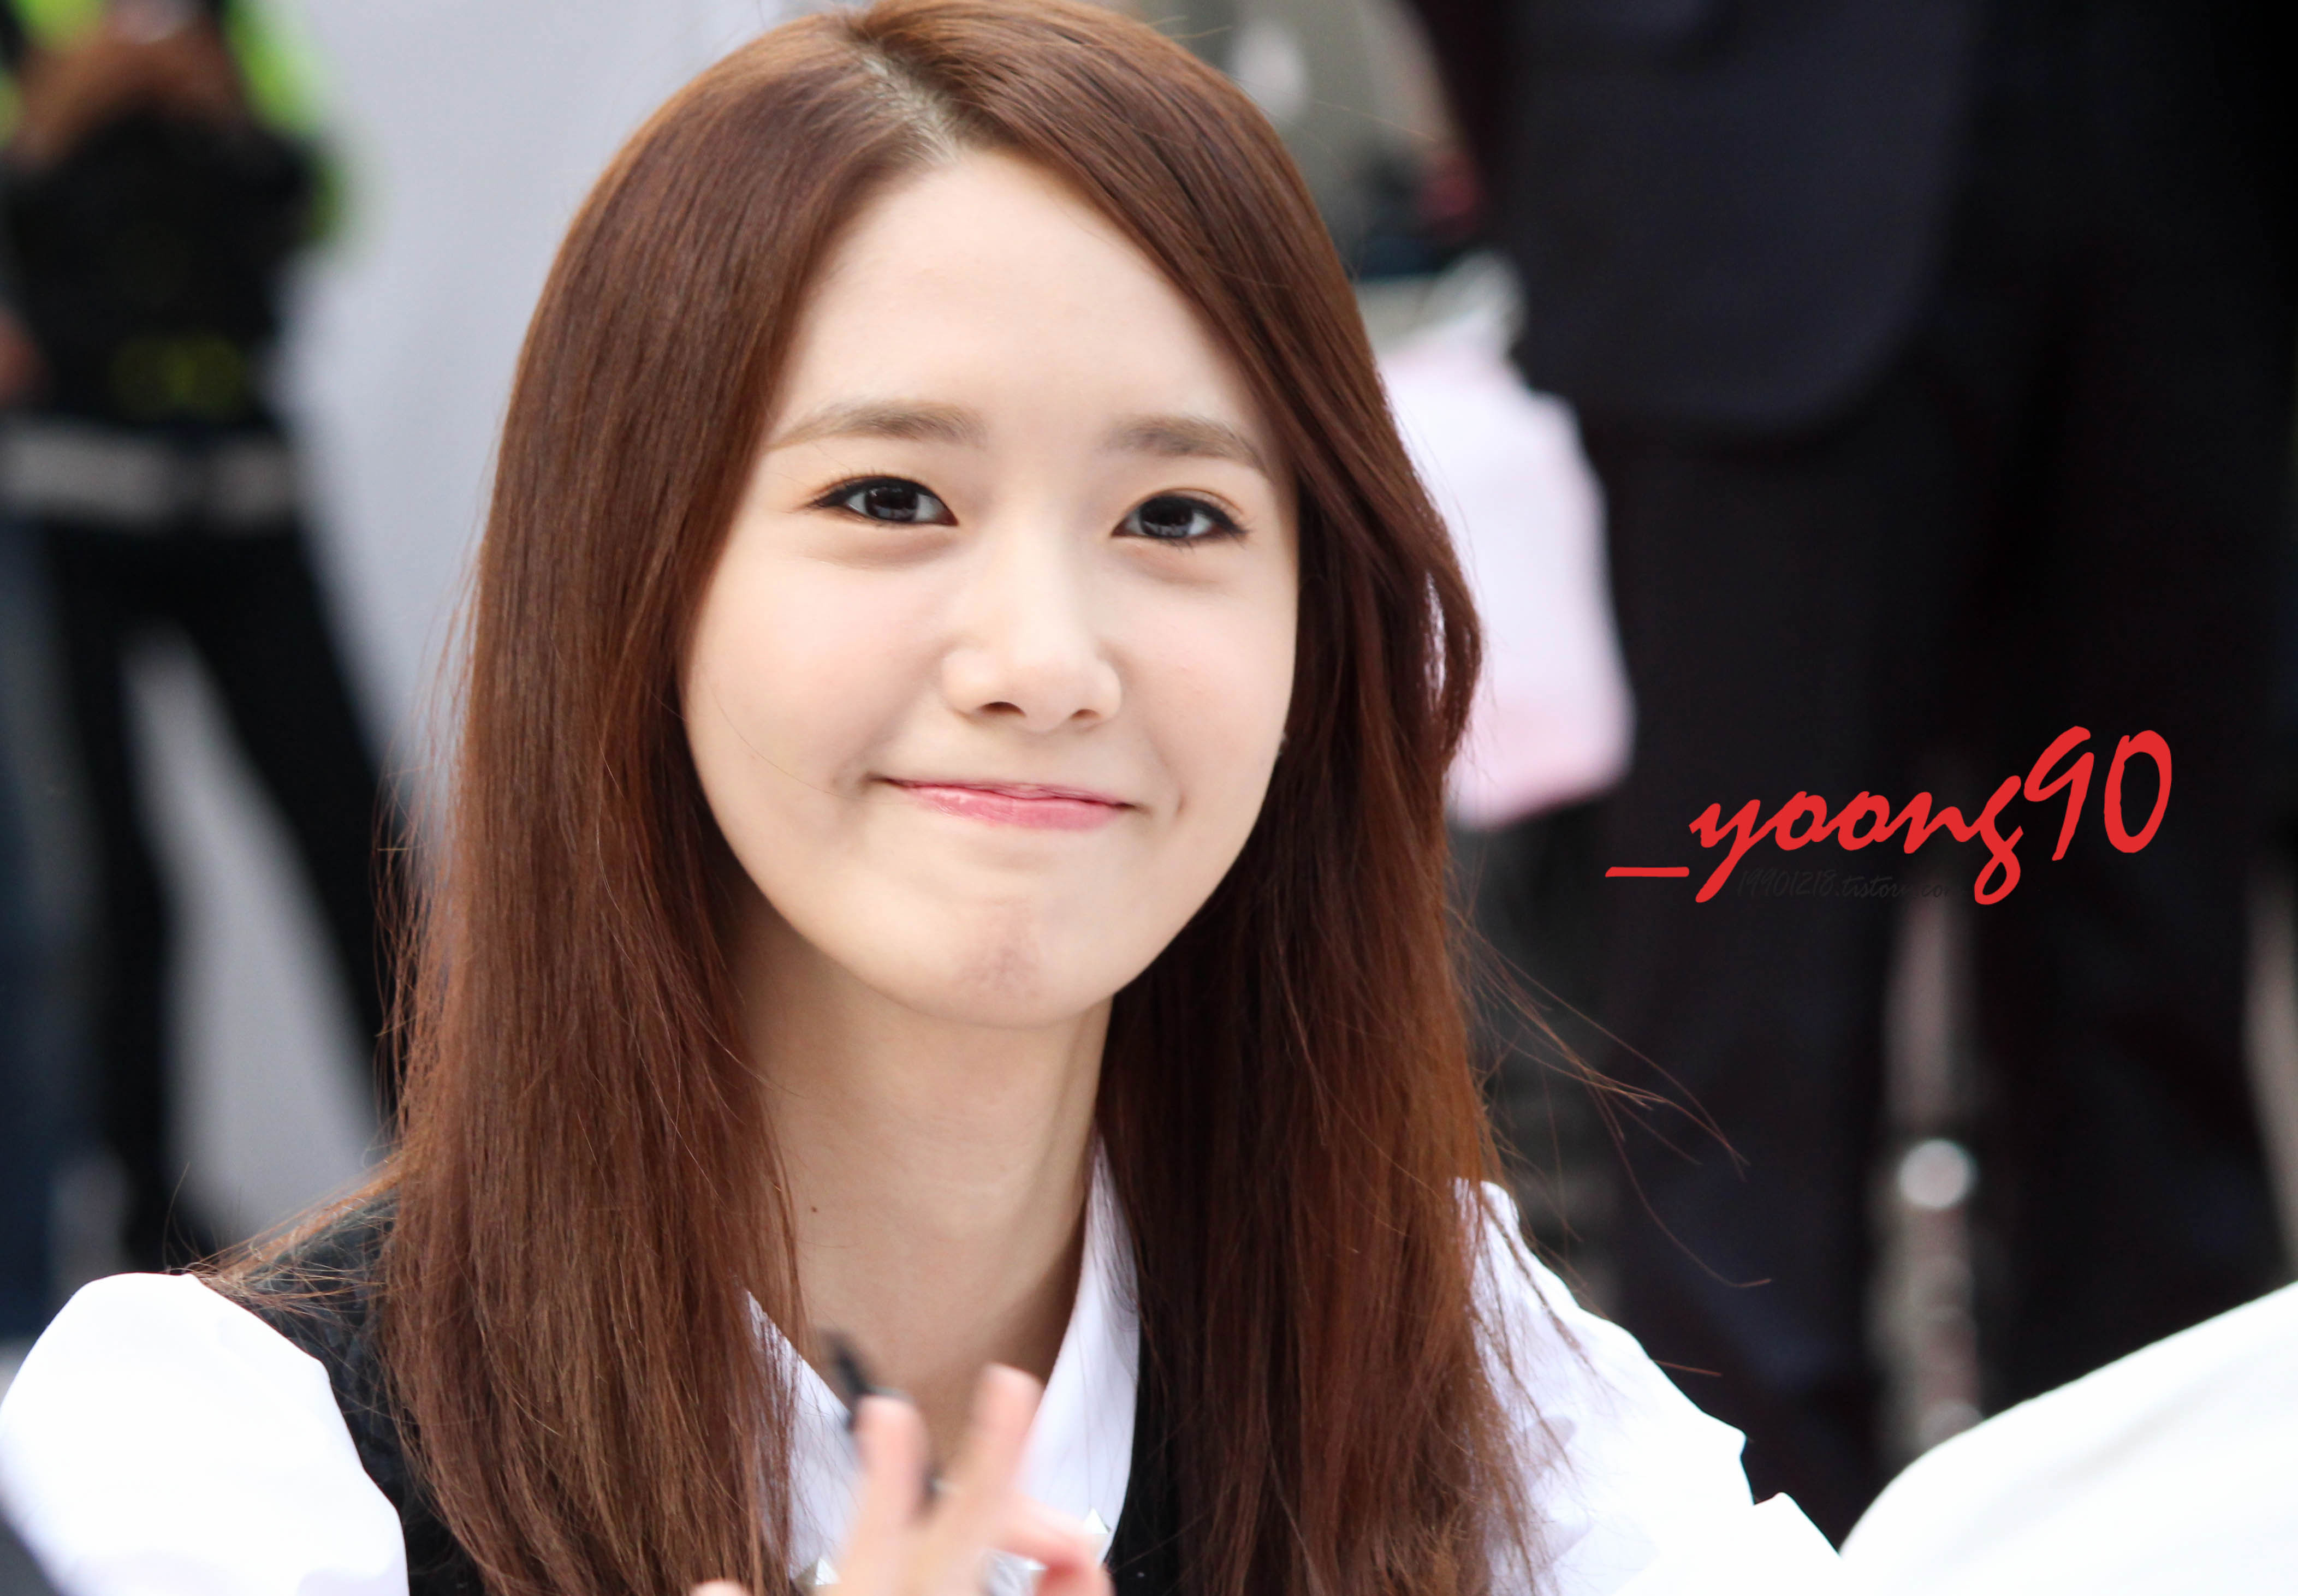 http://snsdpics.com/wp-content/uploads/2013/11/yoona-lotte-fansign-7.jpg